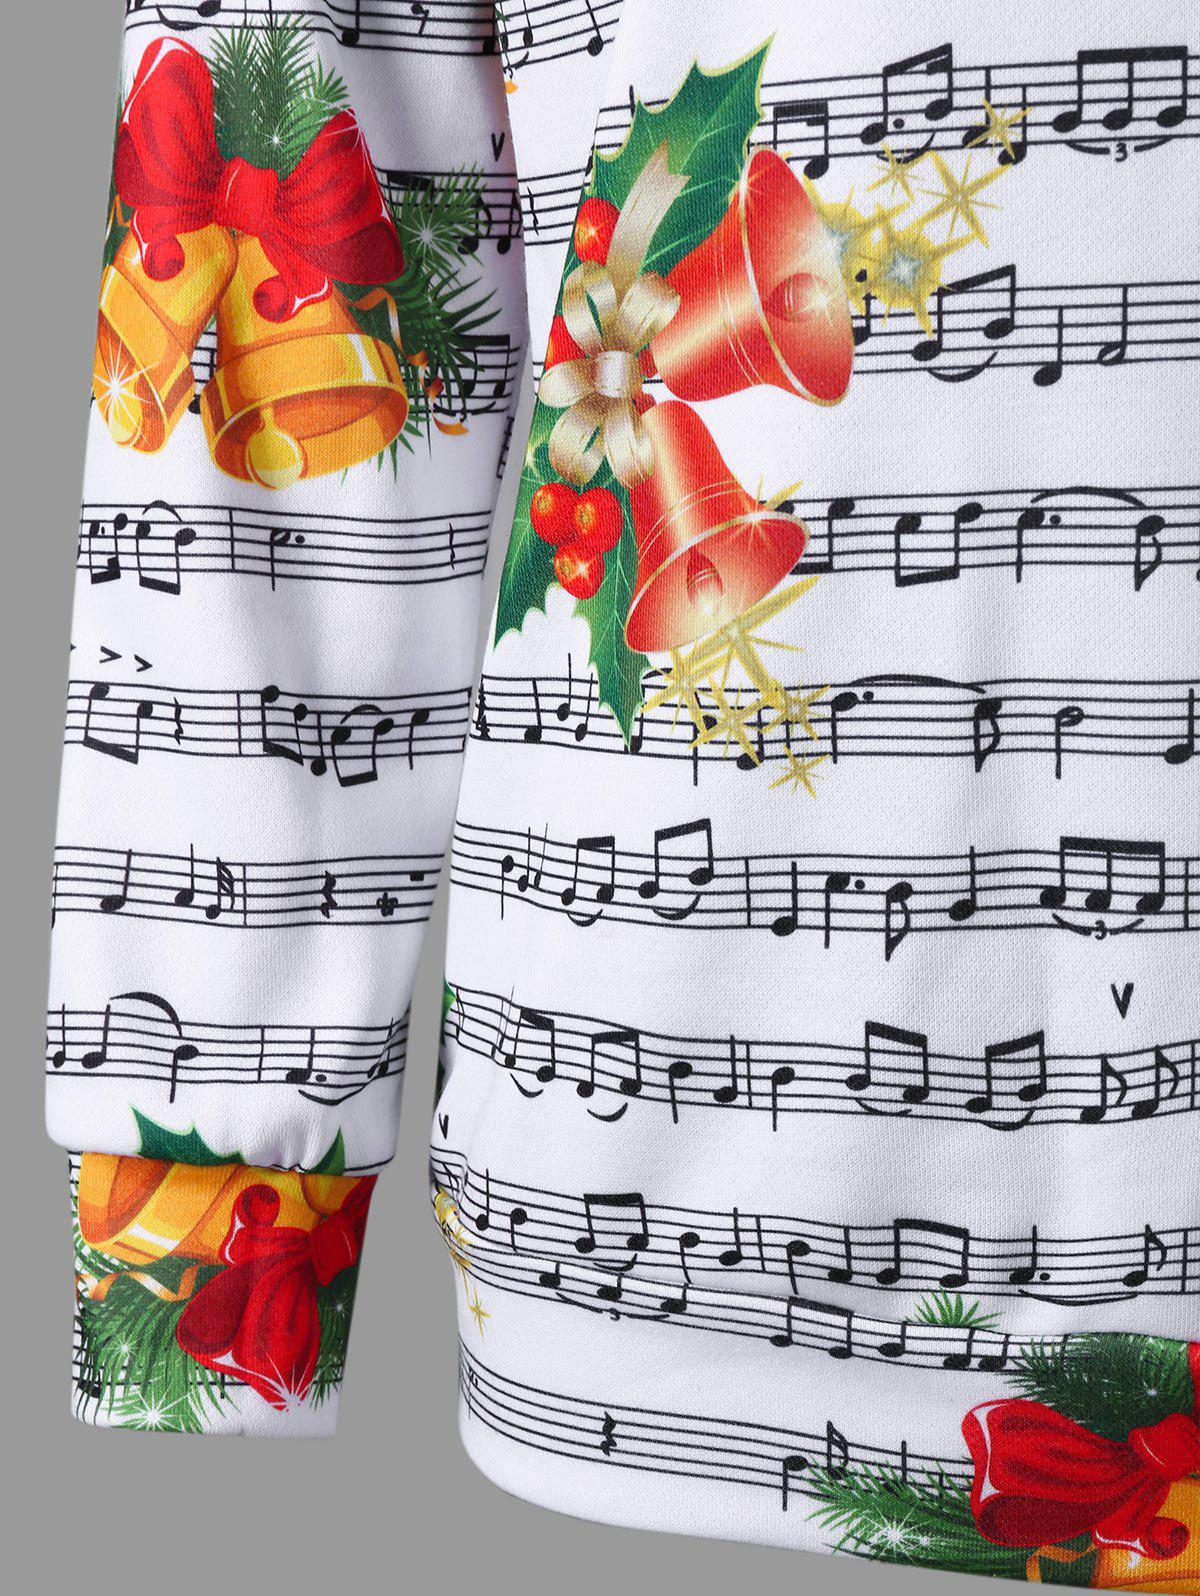 Christmas Music Score and Bell Print Sweatshirt - COLORMIX XL